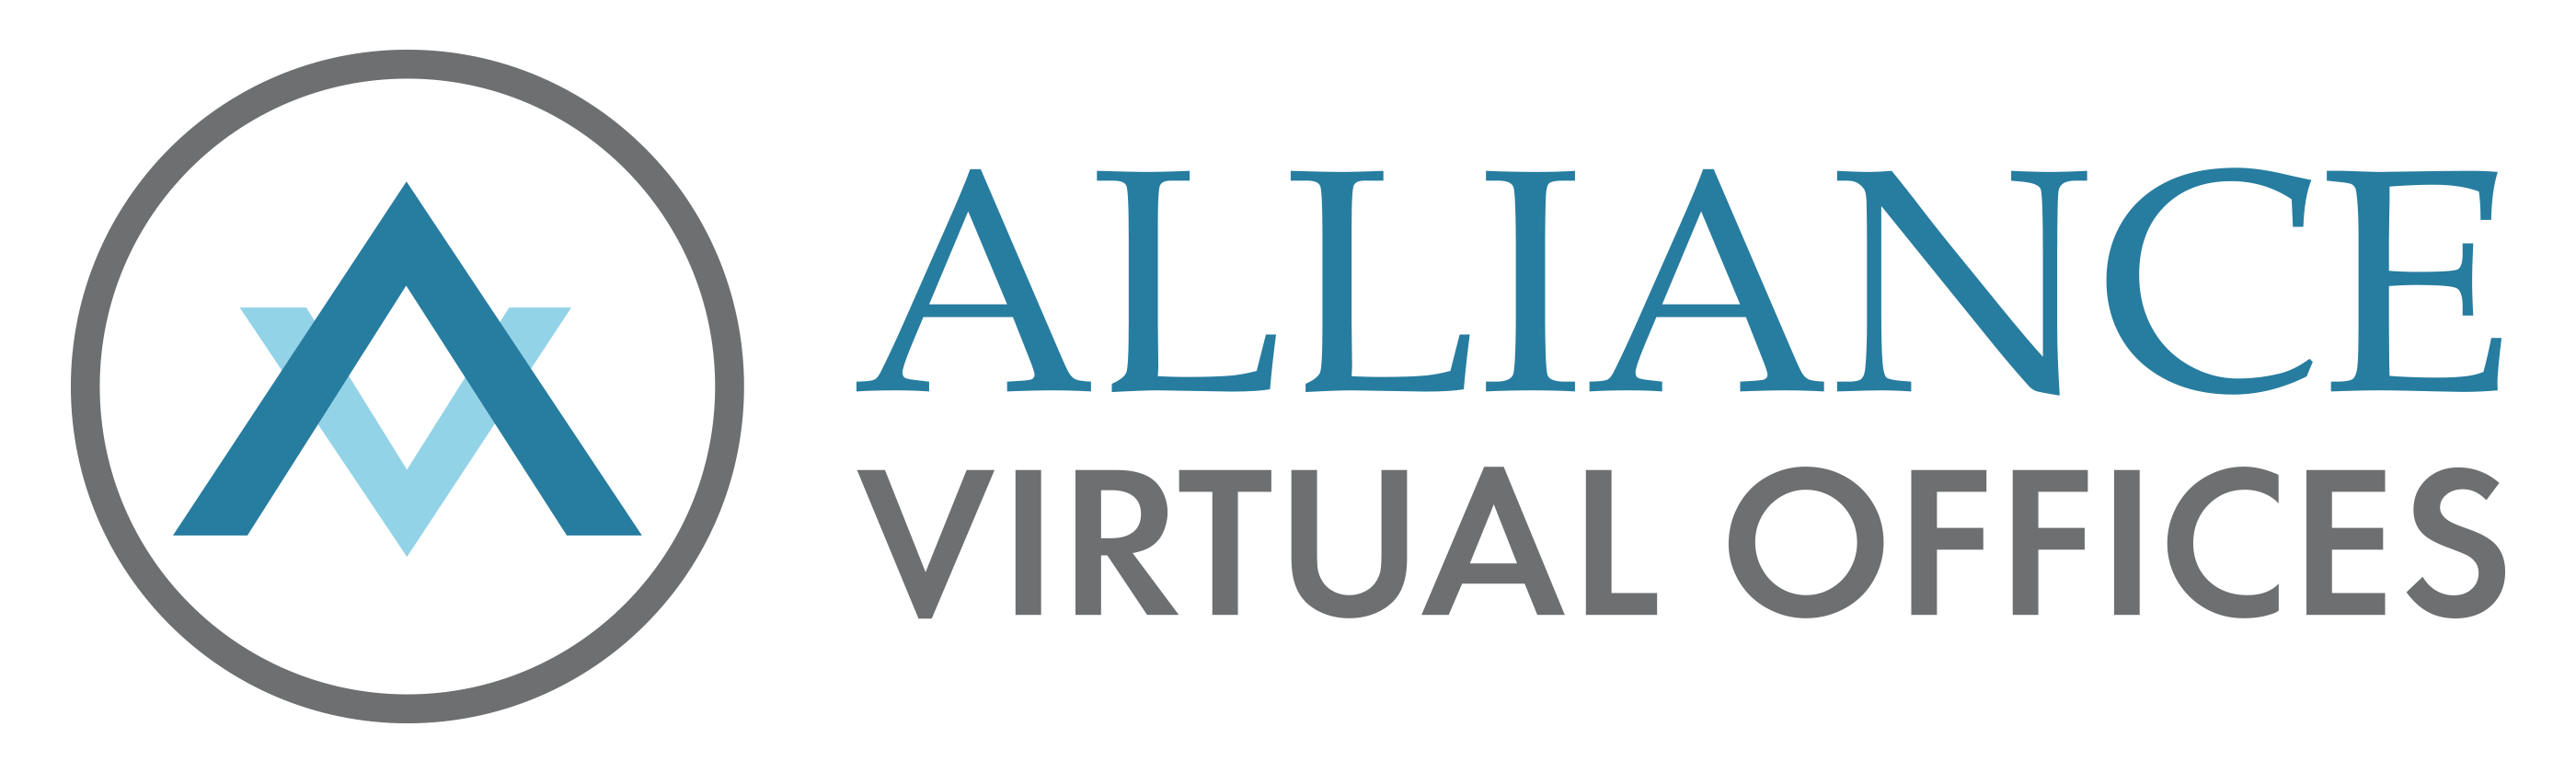 https://anysizedealsweek.com/wp-content/uploads/2020/05/Alliance-Virtual-Offices-Logo.png